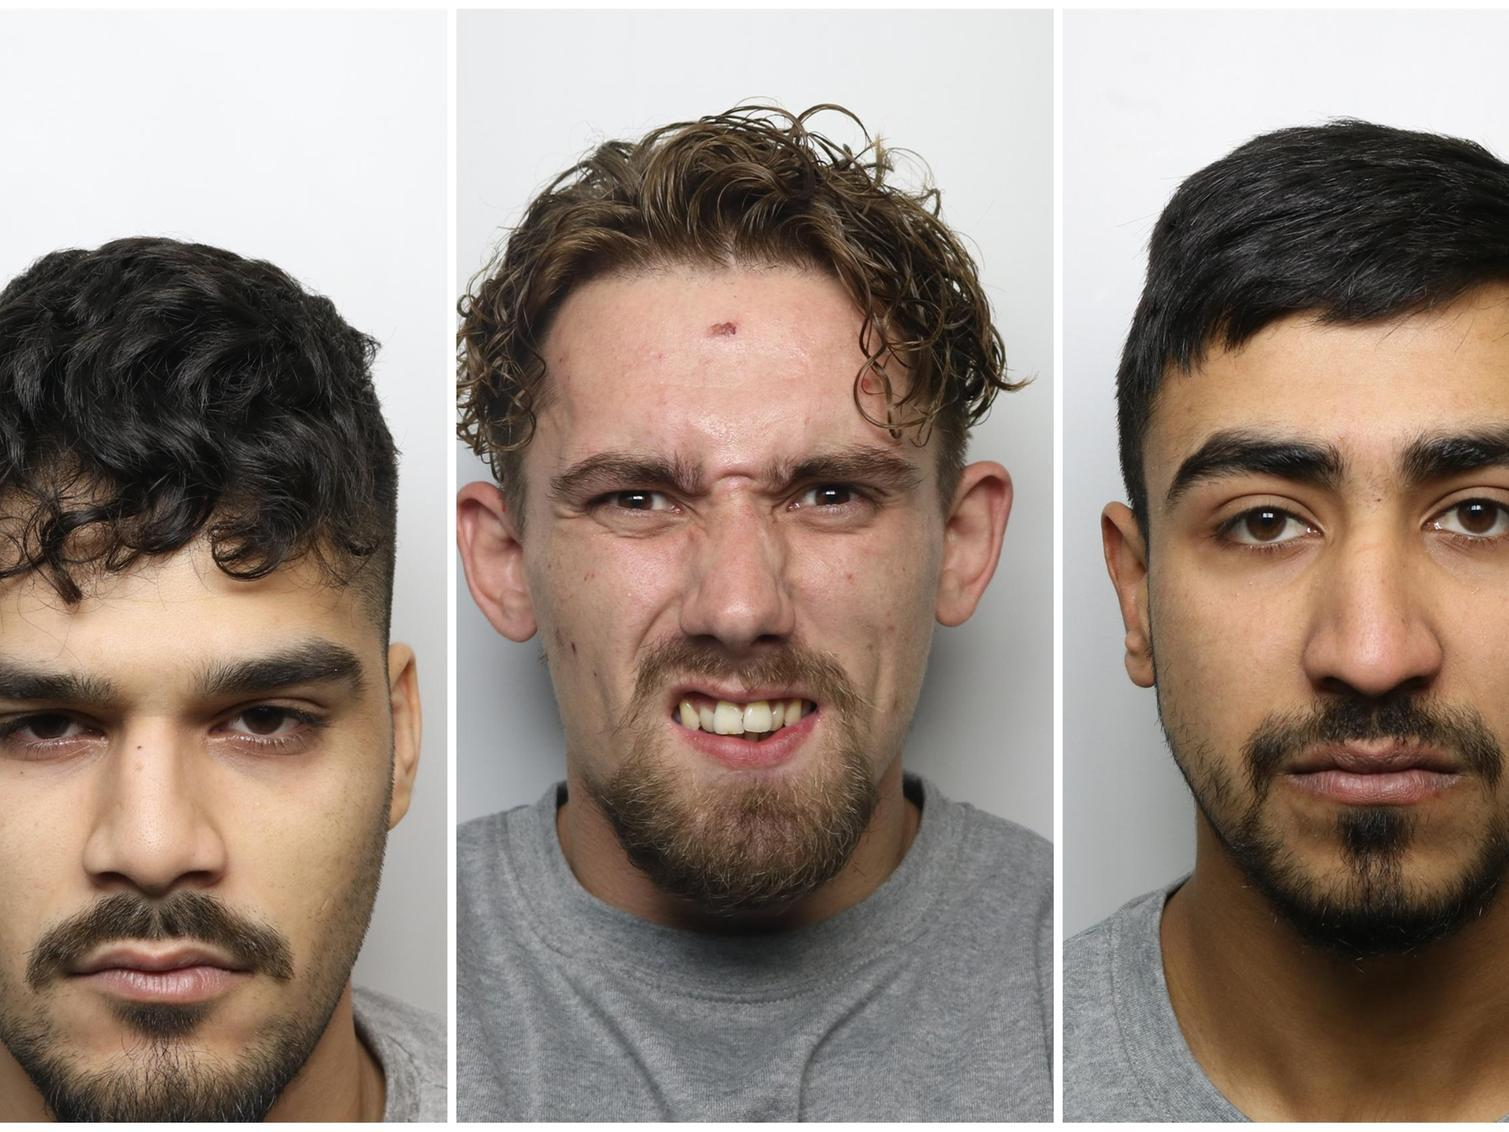 Torture gang who sadistically beat man to death and left his body in a street are jailed for life